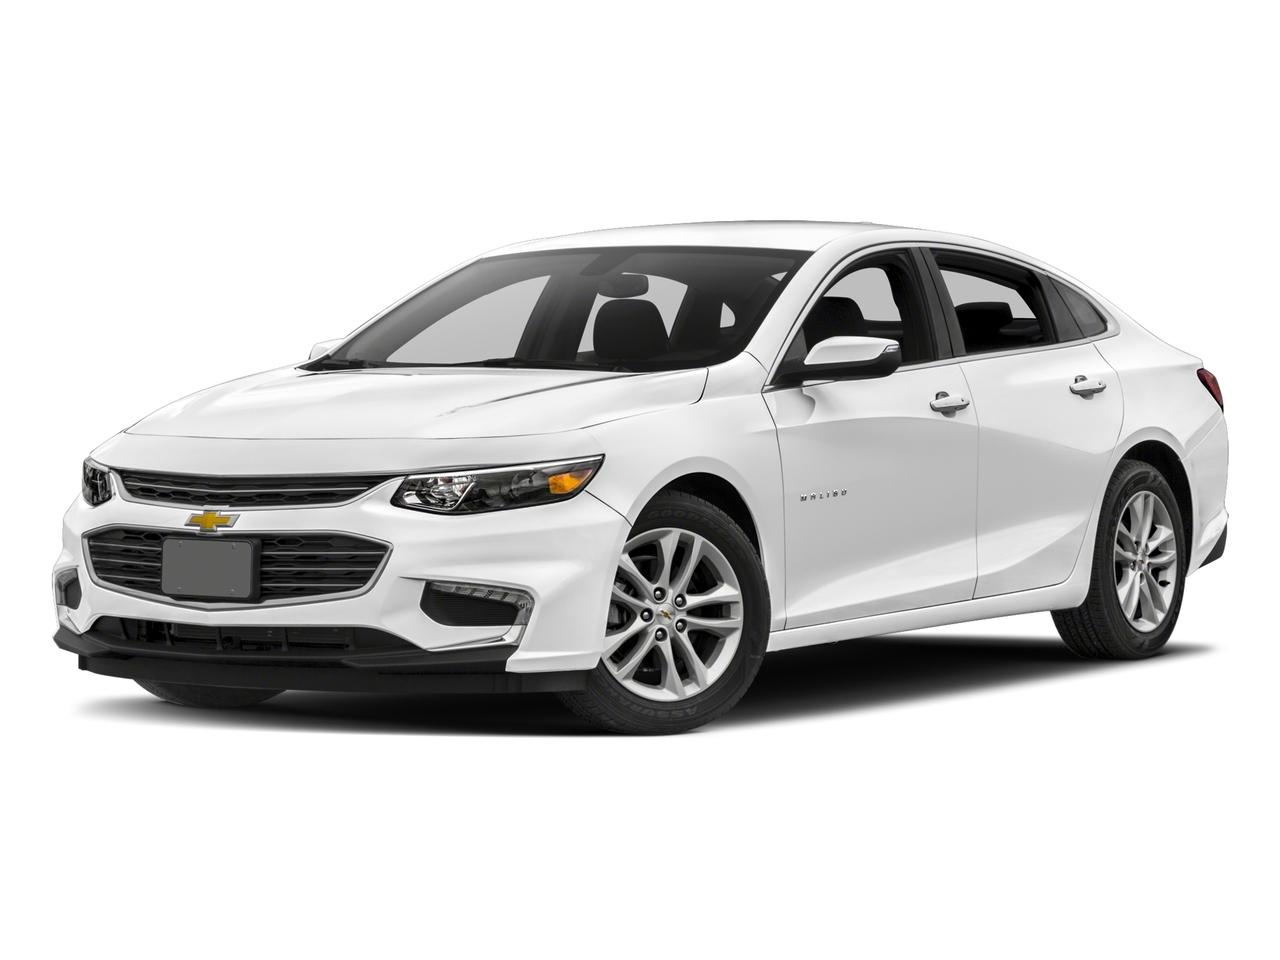 2018 Chevrolet Malibu Vehicle Photo in Nashua, NH 03060